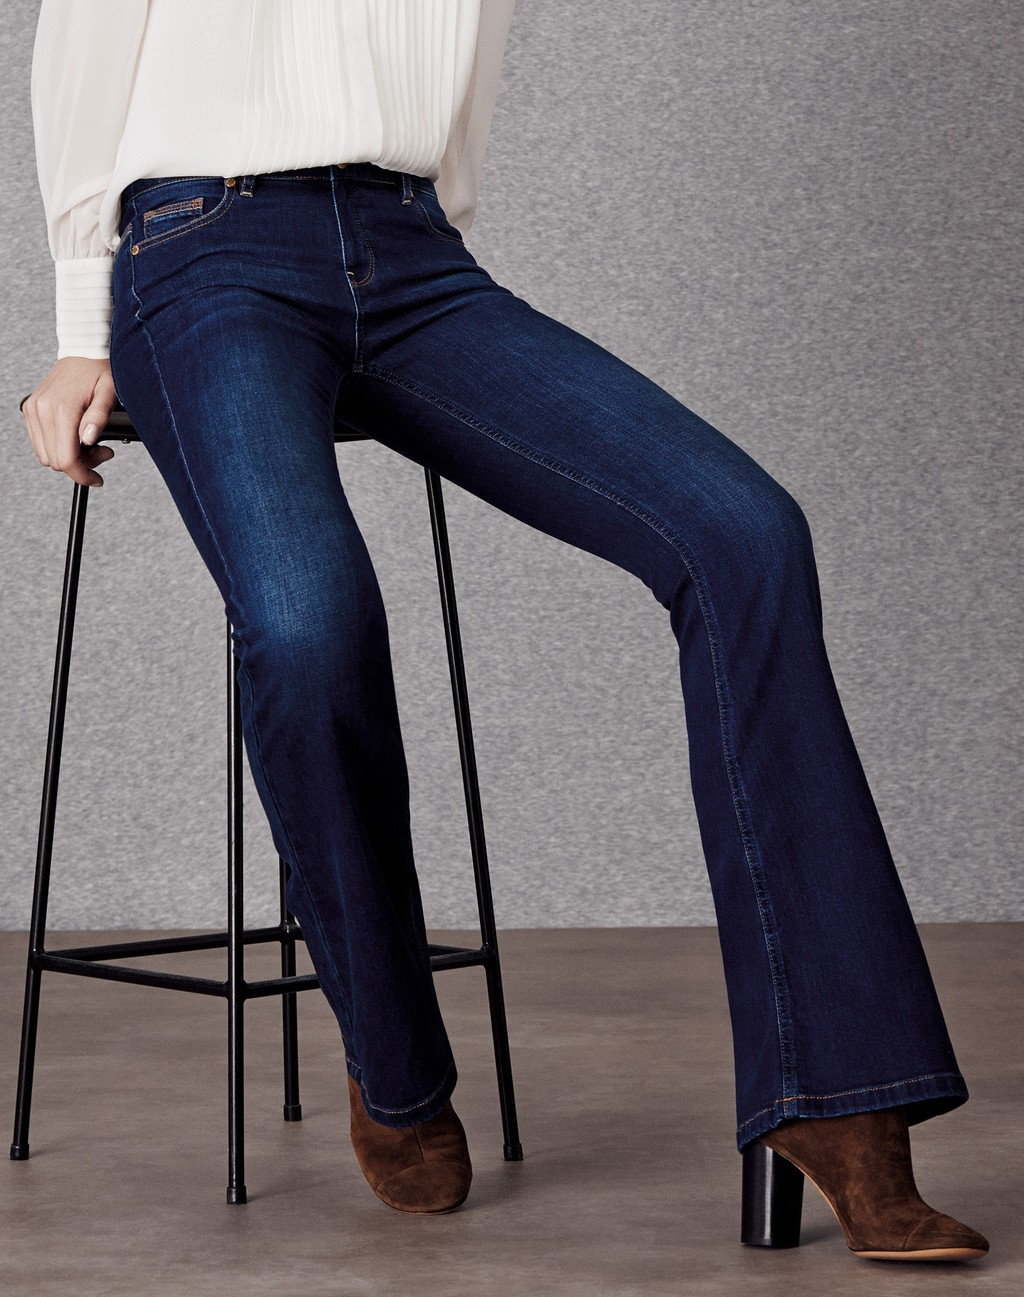 Slim Flare Jean Faded Ink - style: flares; length: standard; pattern: plain; pocket detail: traditional 5 pocket; waist: mid/regular rise; predominant colour: navy; occasions: casual; fibres: cotton - stretch; texture group: denim; pattern type: fabric; season: a/w 2015; wardrobe: basic